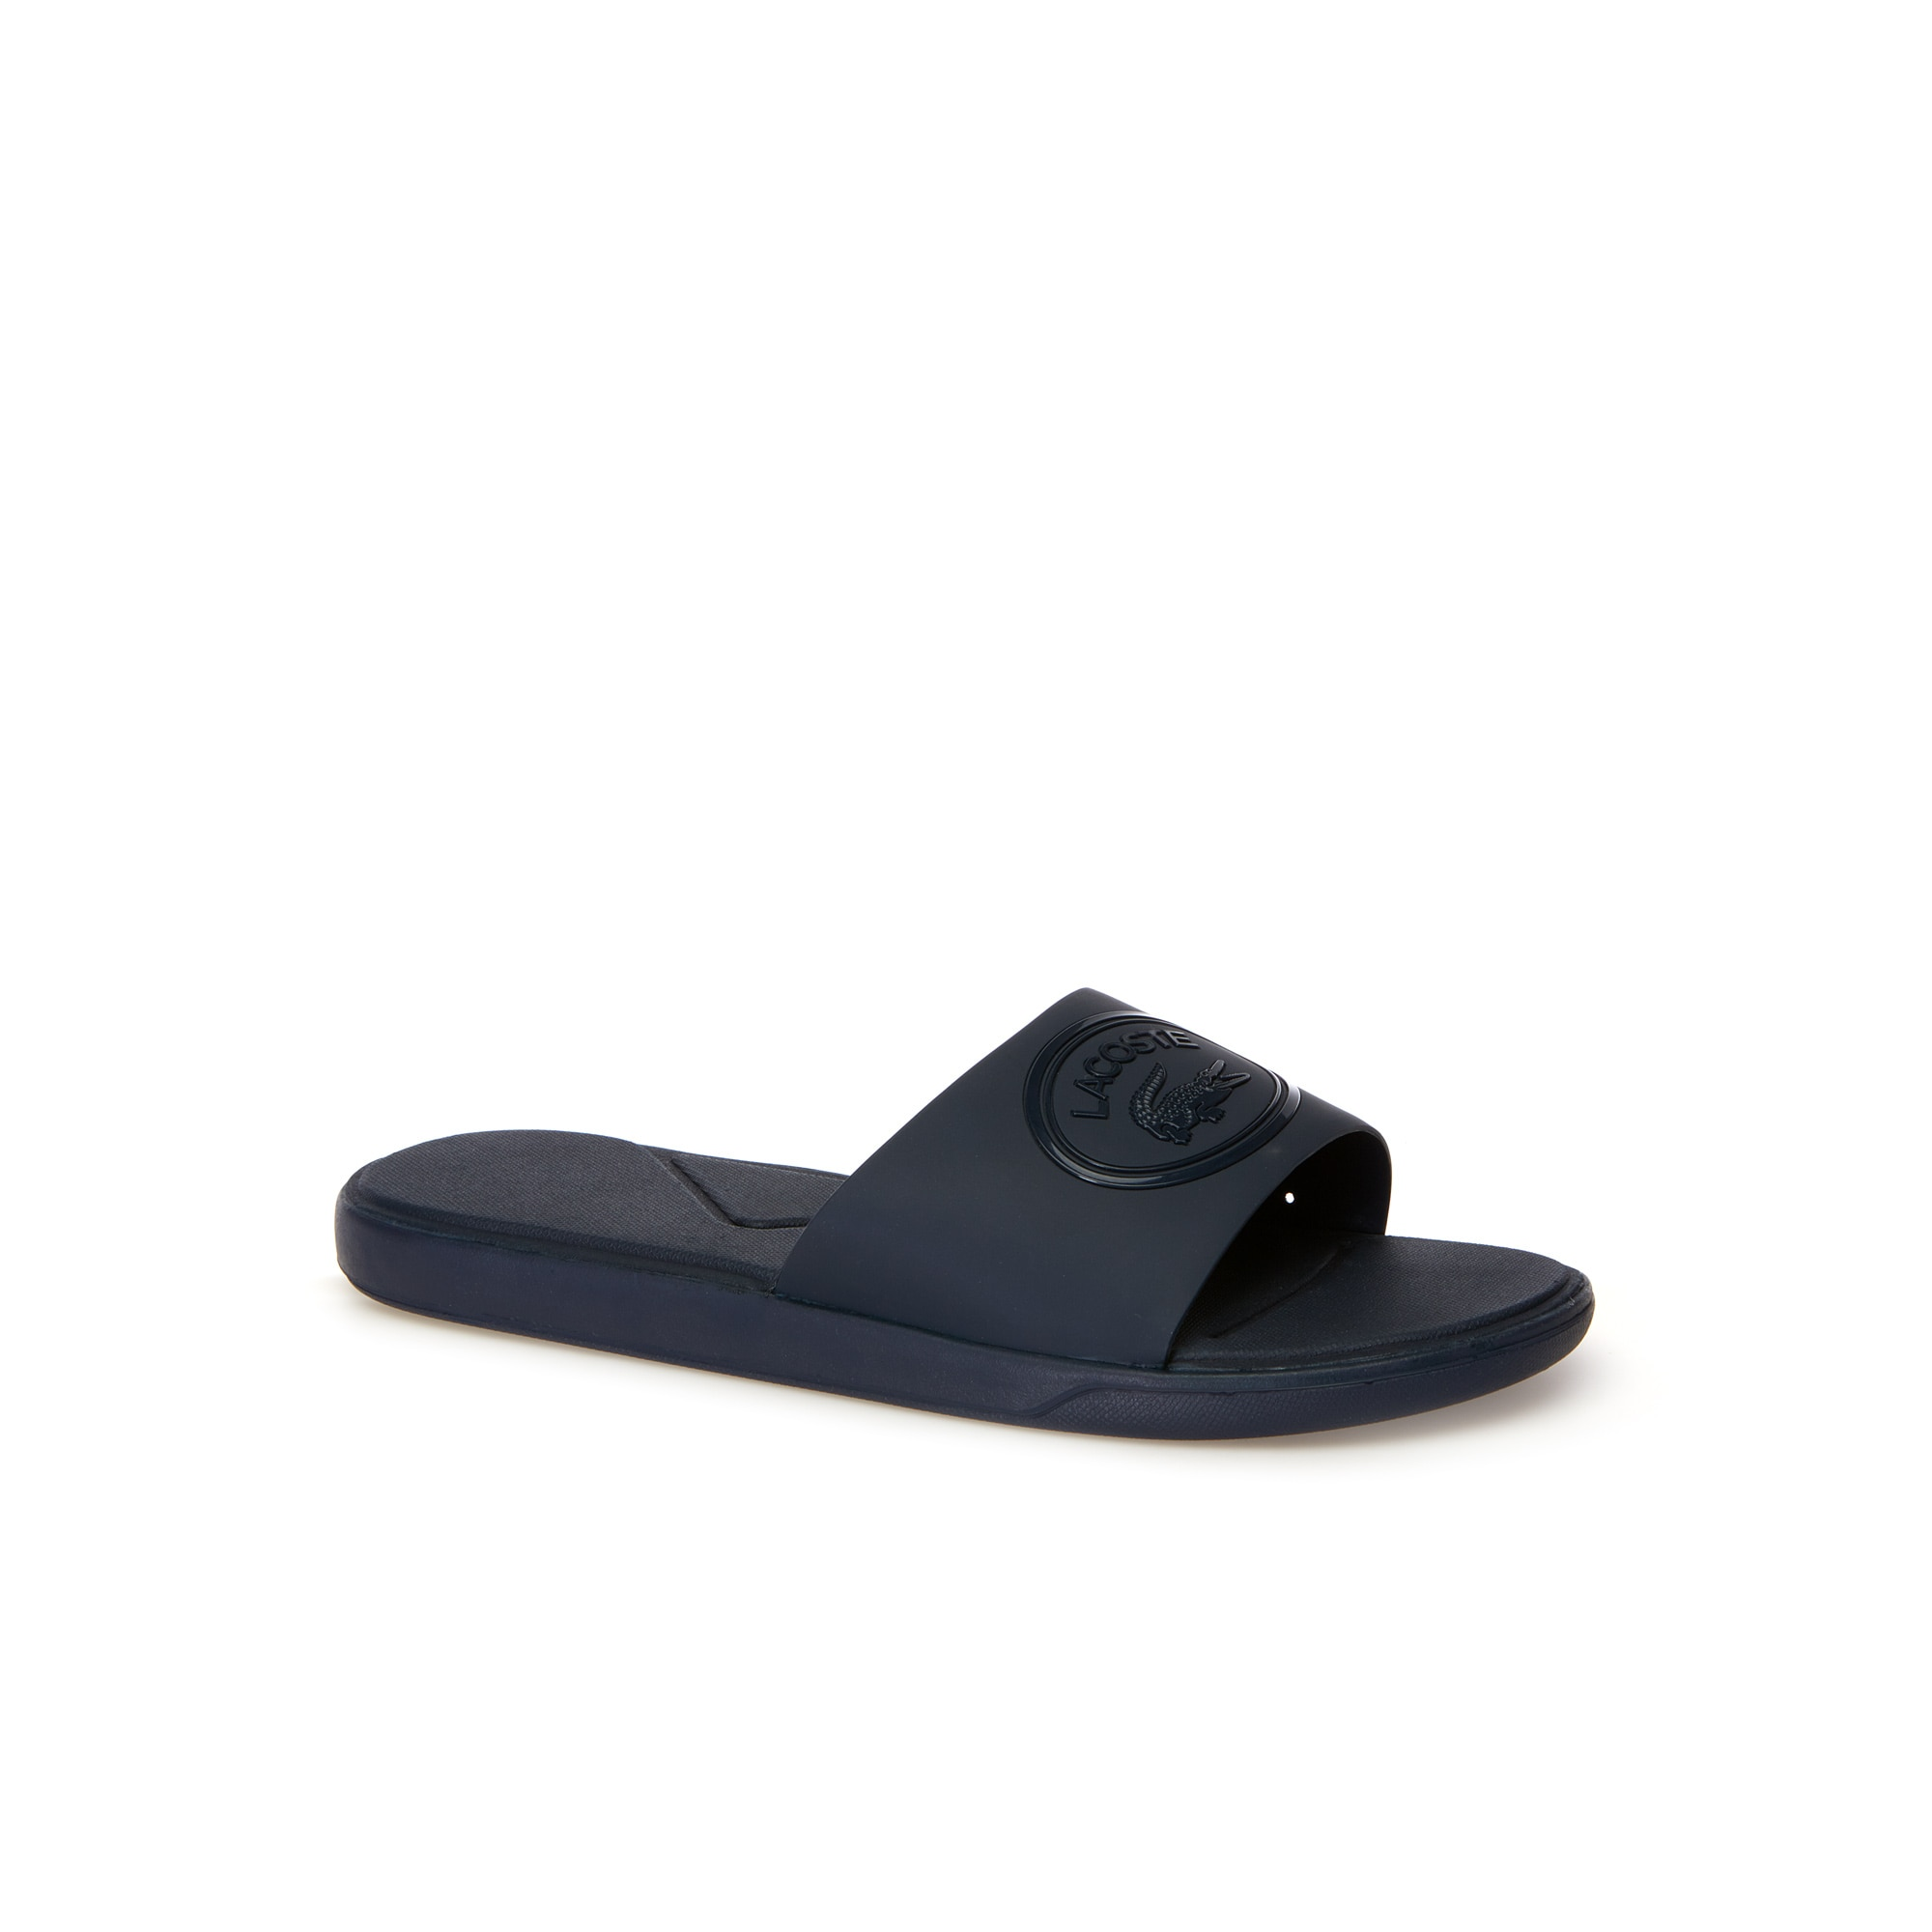 962f42fb5e08a Men s L.30 Synthetic Slides